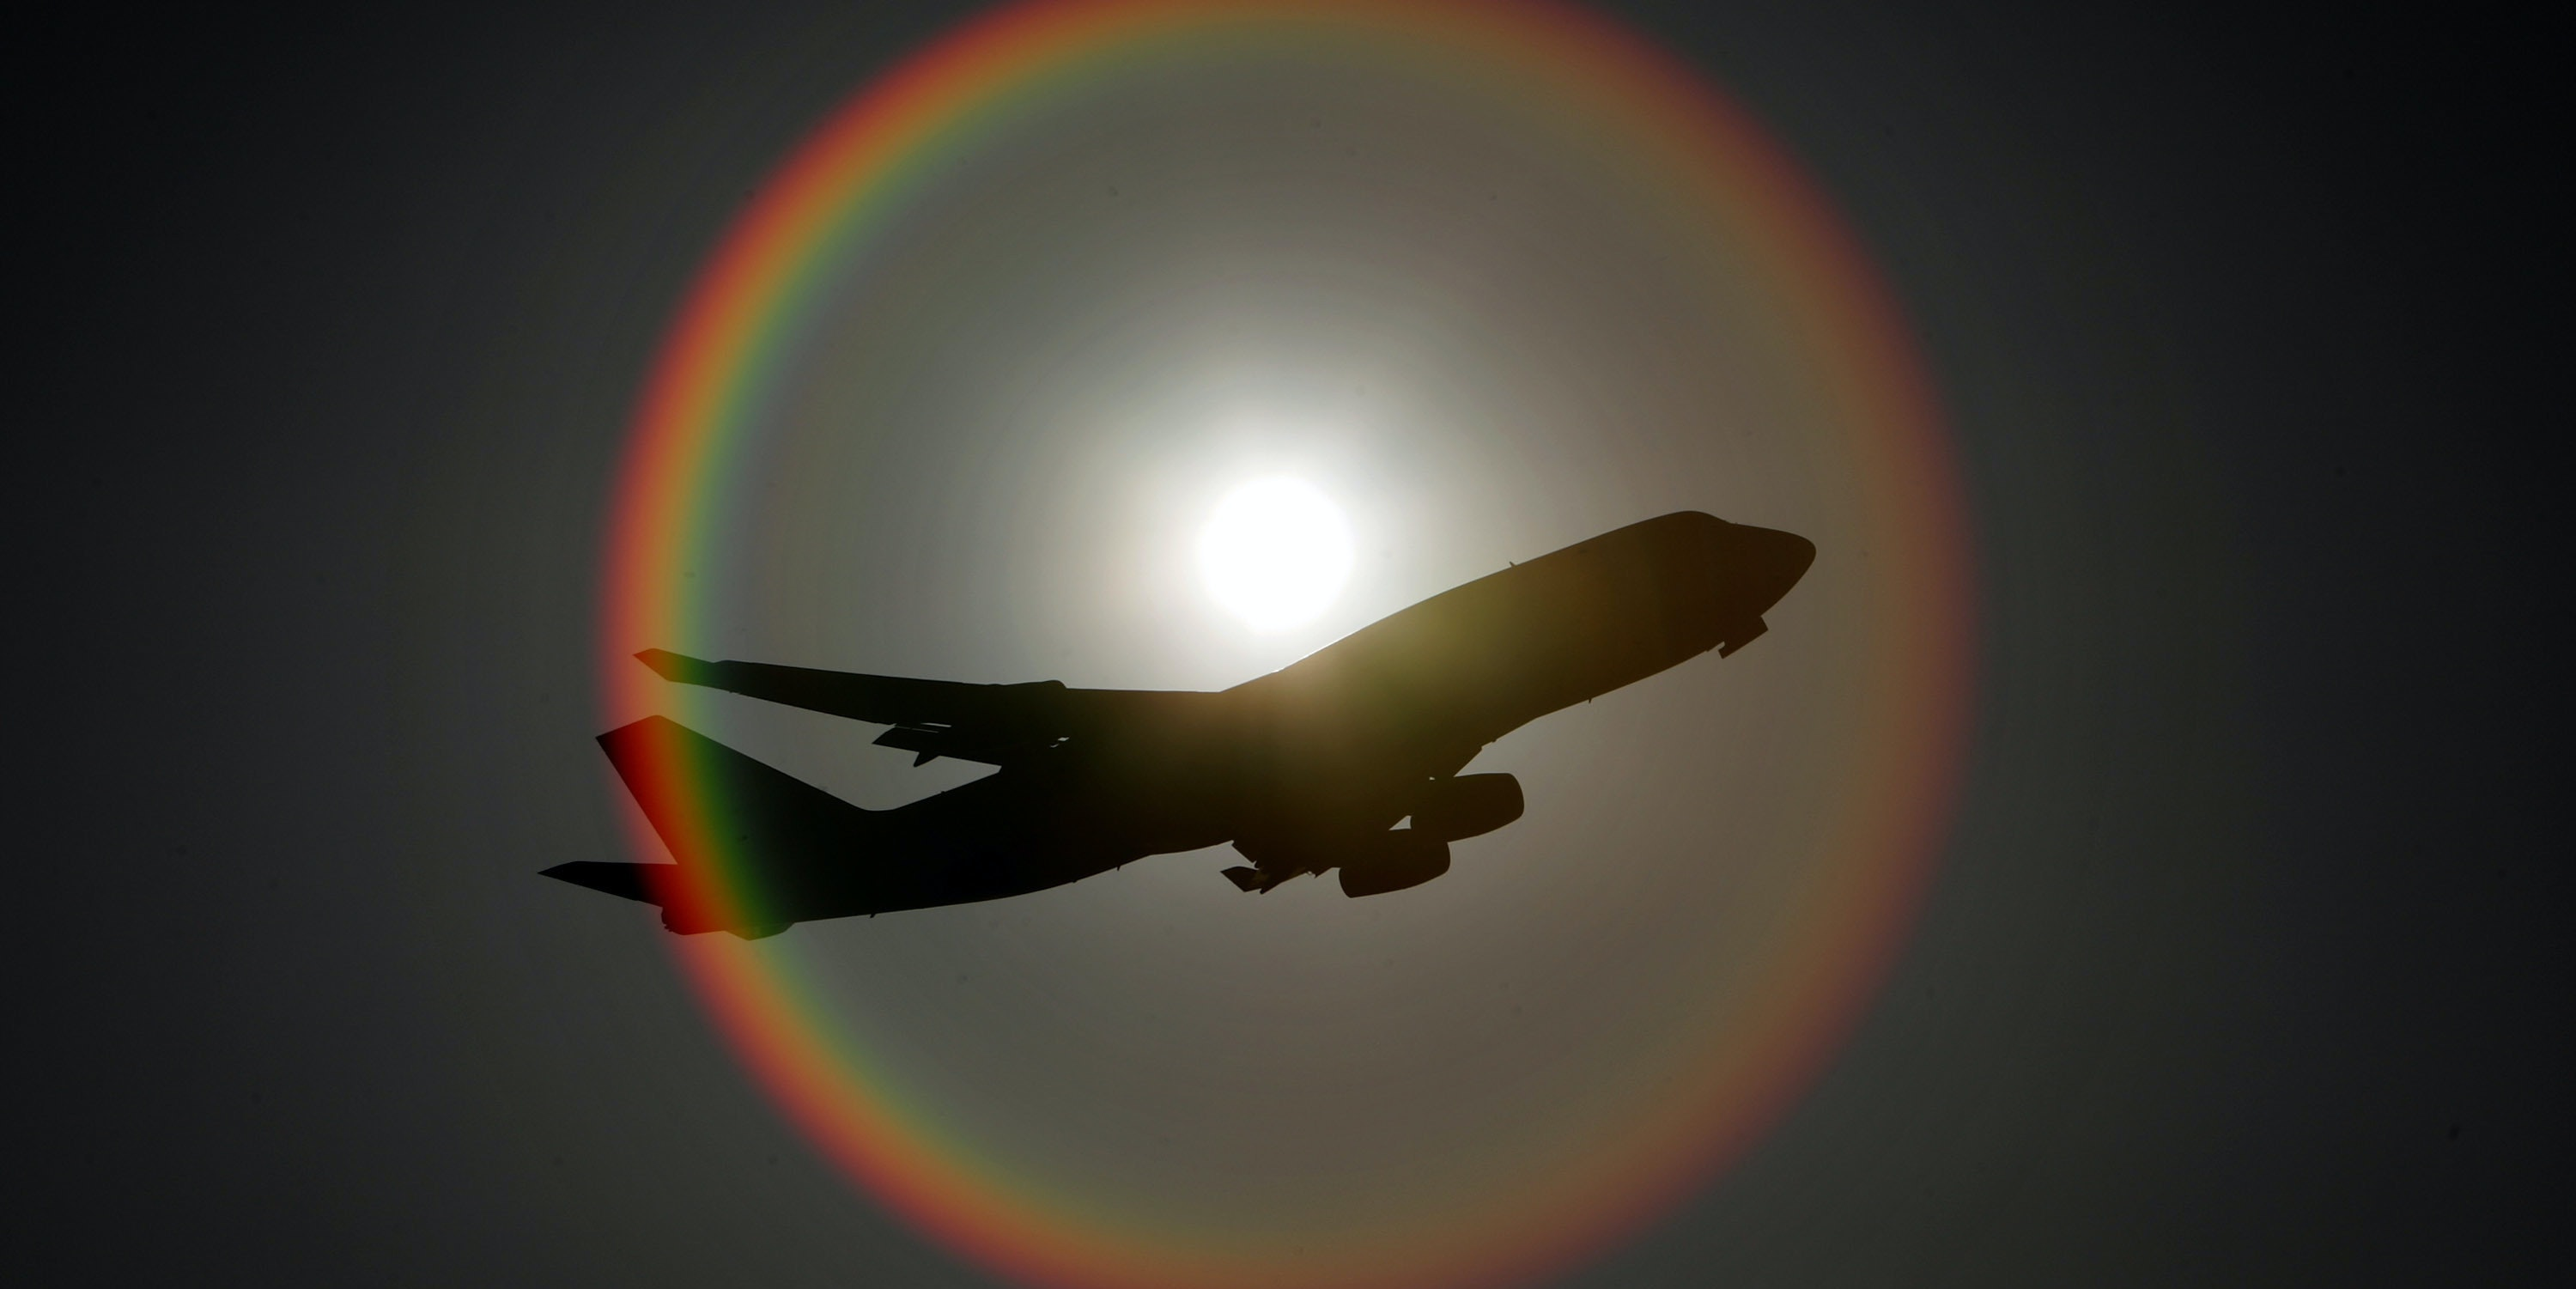 LONDON, ENGLAND - JANUARY 17:  An aeroplane flies in front of the sun as it departs Heathrow airport on January 17, 2009 in London, England. Secretary of State for Transport, Geoff Hoon, announced the decision to go ahead with a third runway at Heathrow on Thursday amid opposition from the Liberal Democrats, Conservatives, environmental groups and local residents.  (Photo by Oli Scarff/Getty Images)